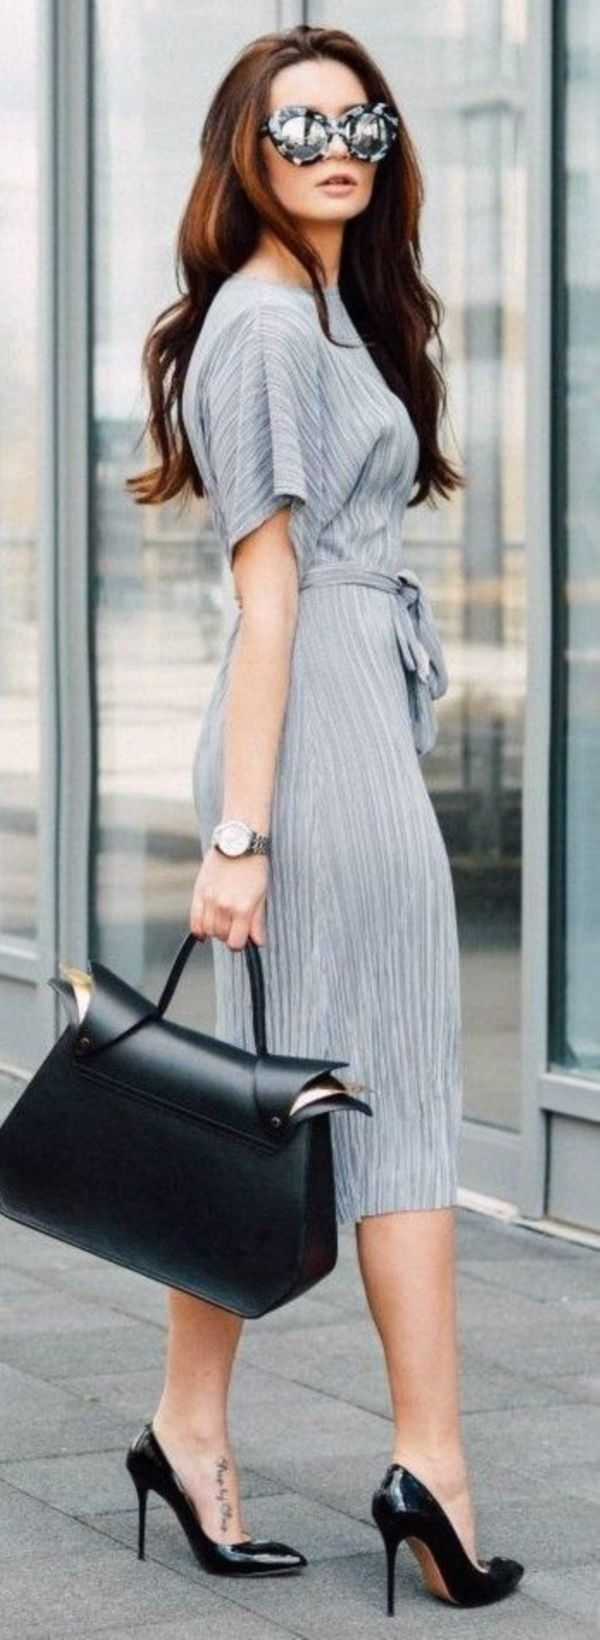 Grey Outfits to Look Above Average0051